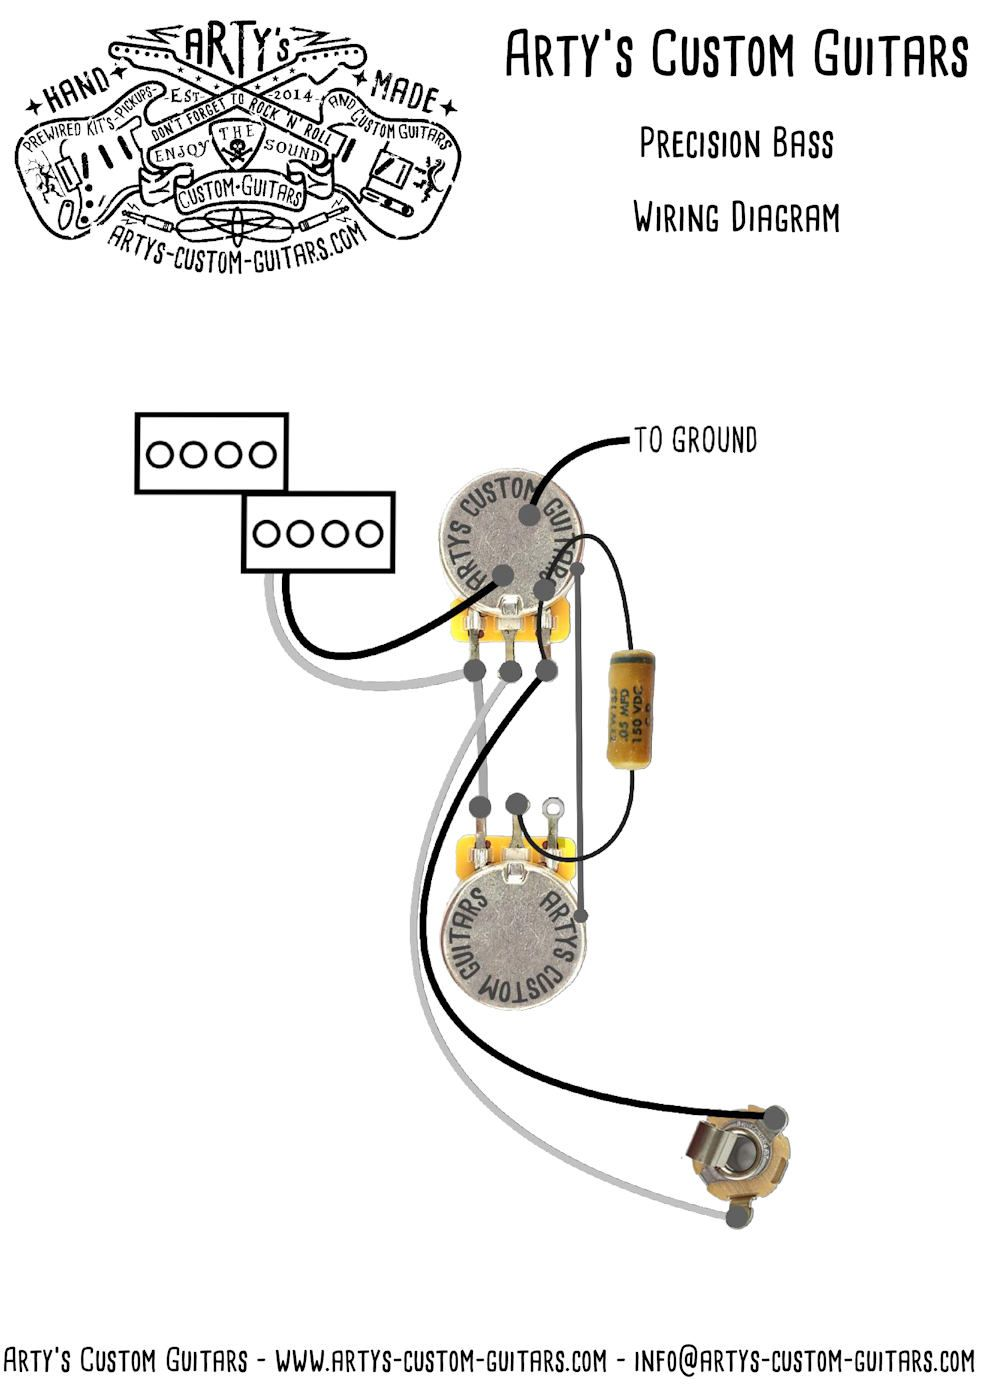 small resolution of precision bass wiring diagram arty s custom guitars